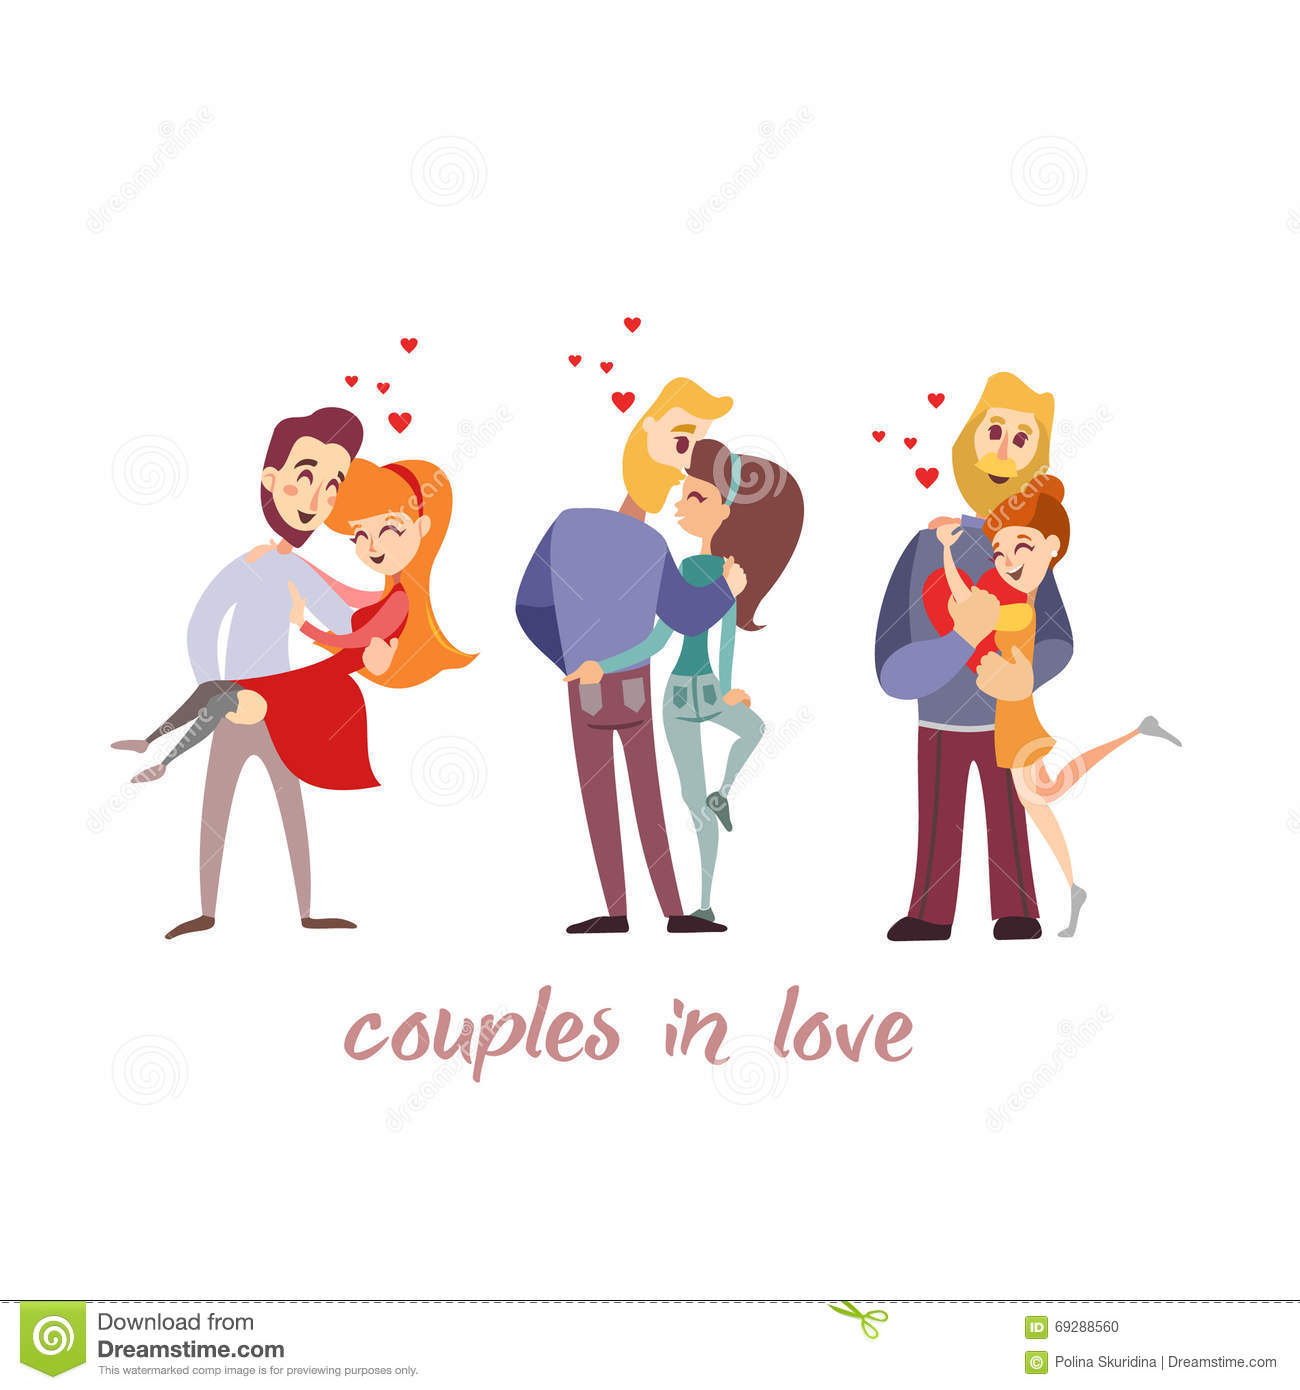 Cute cartoon pics of couples in love